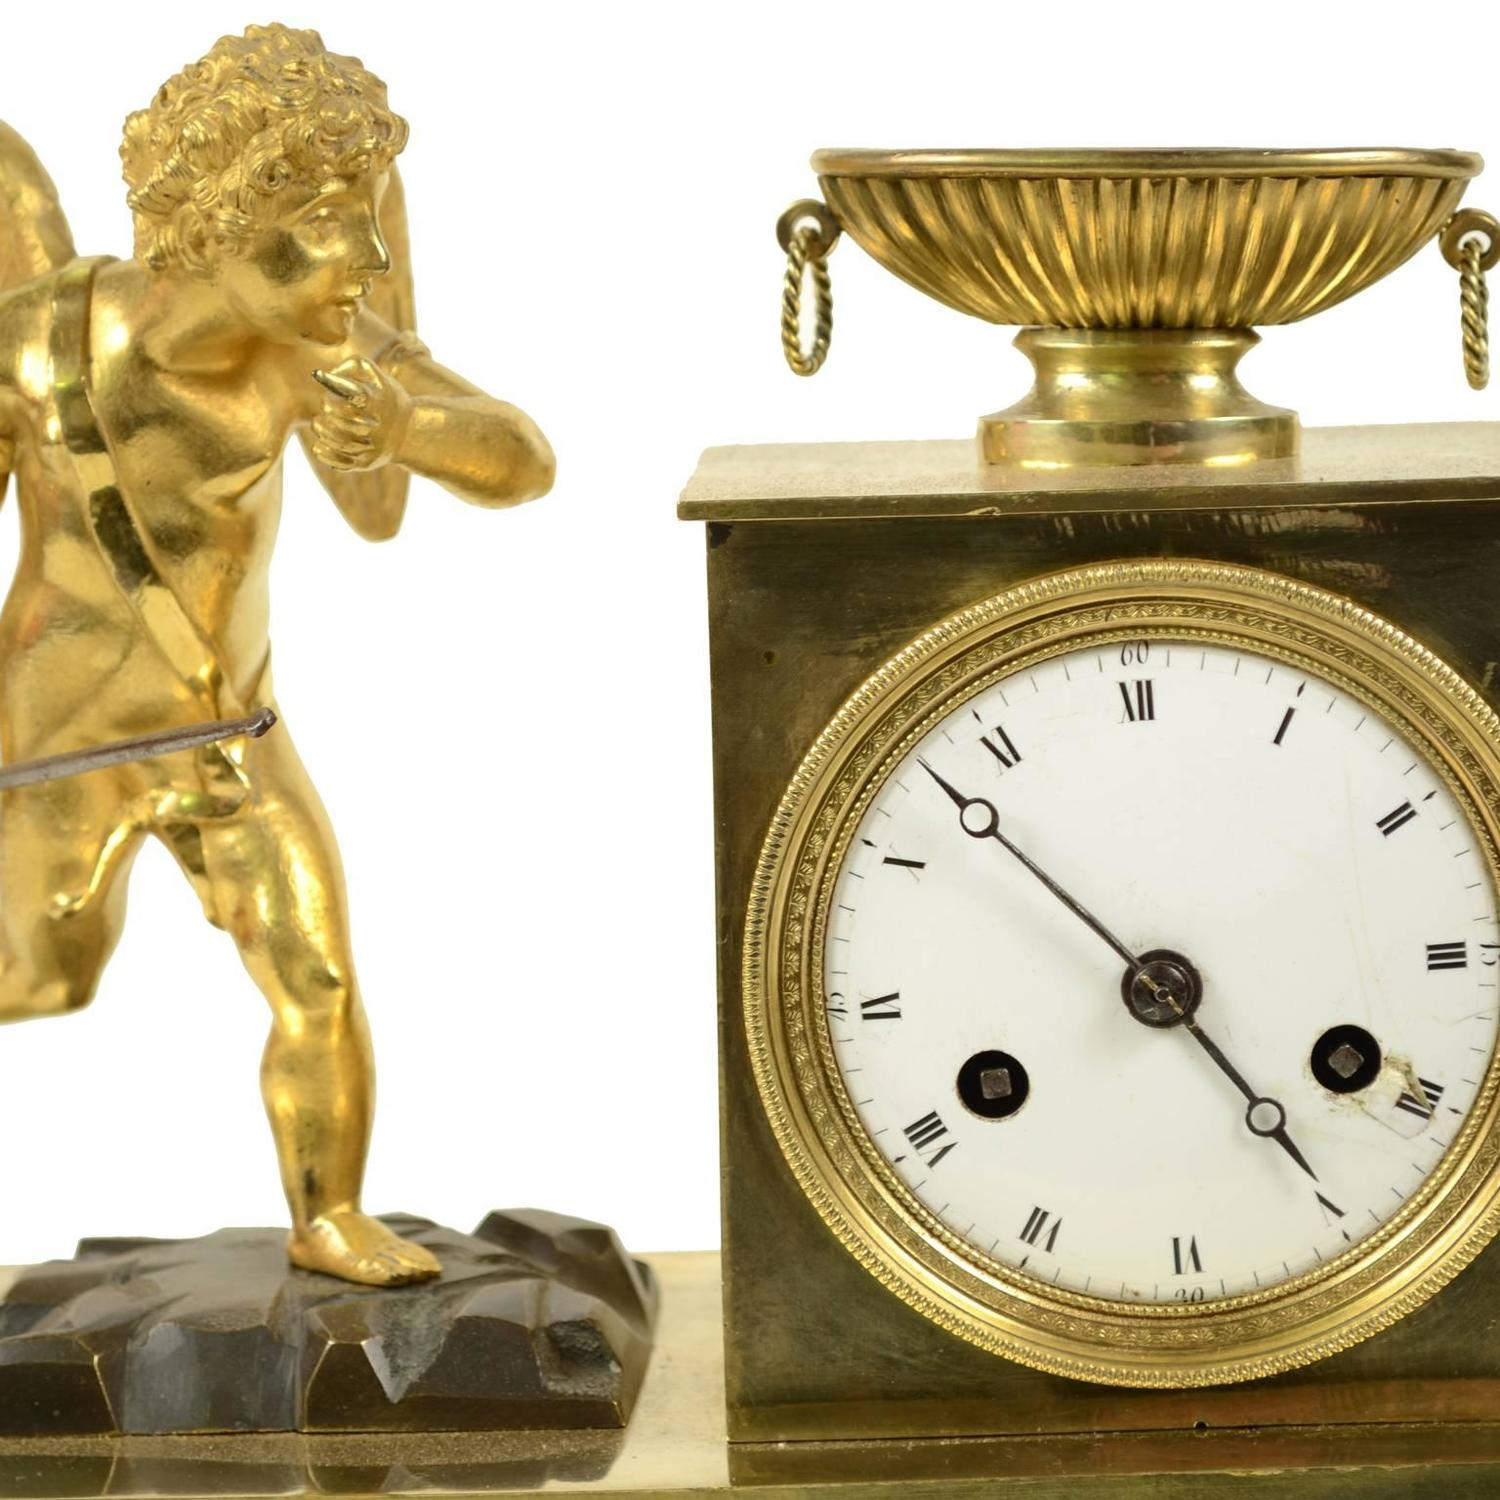 When The First Clock Was Made